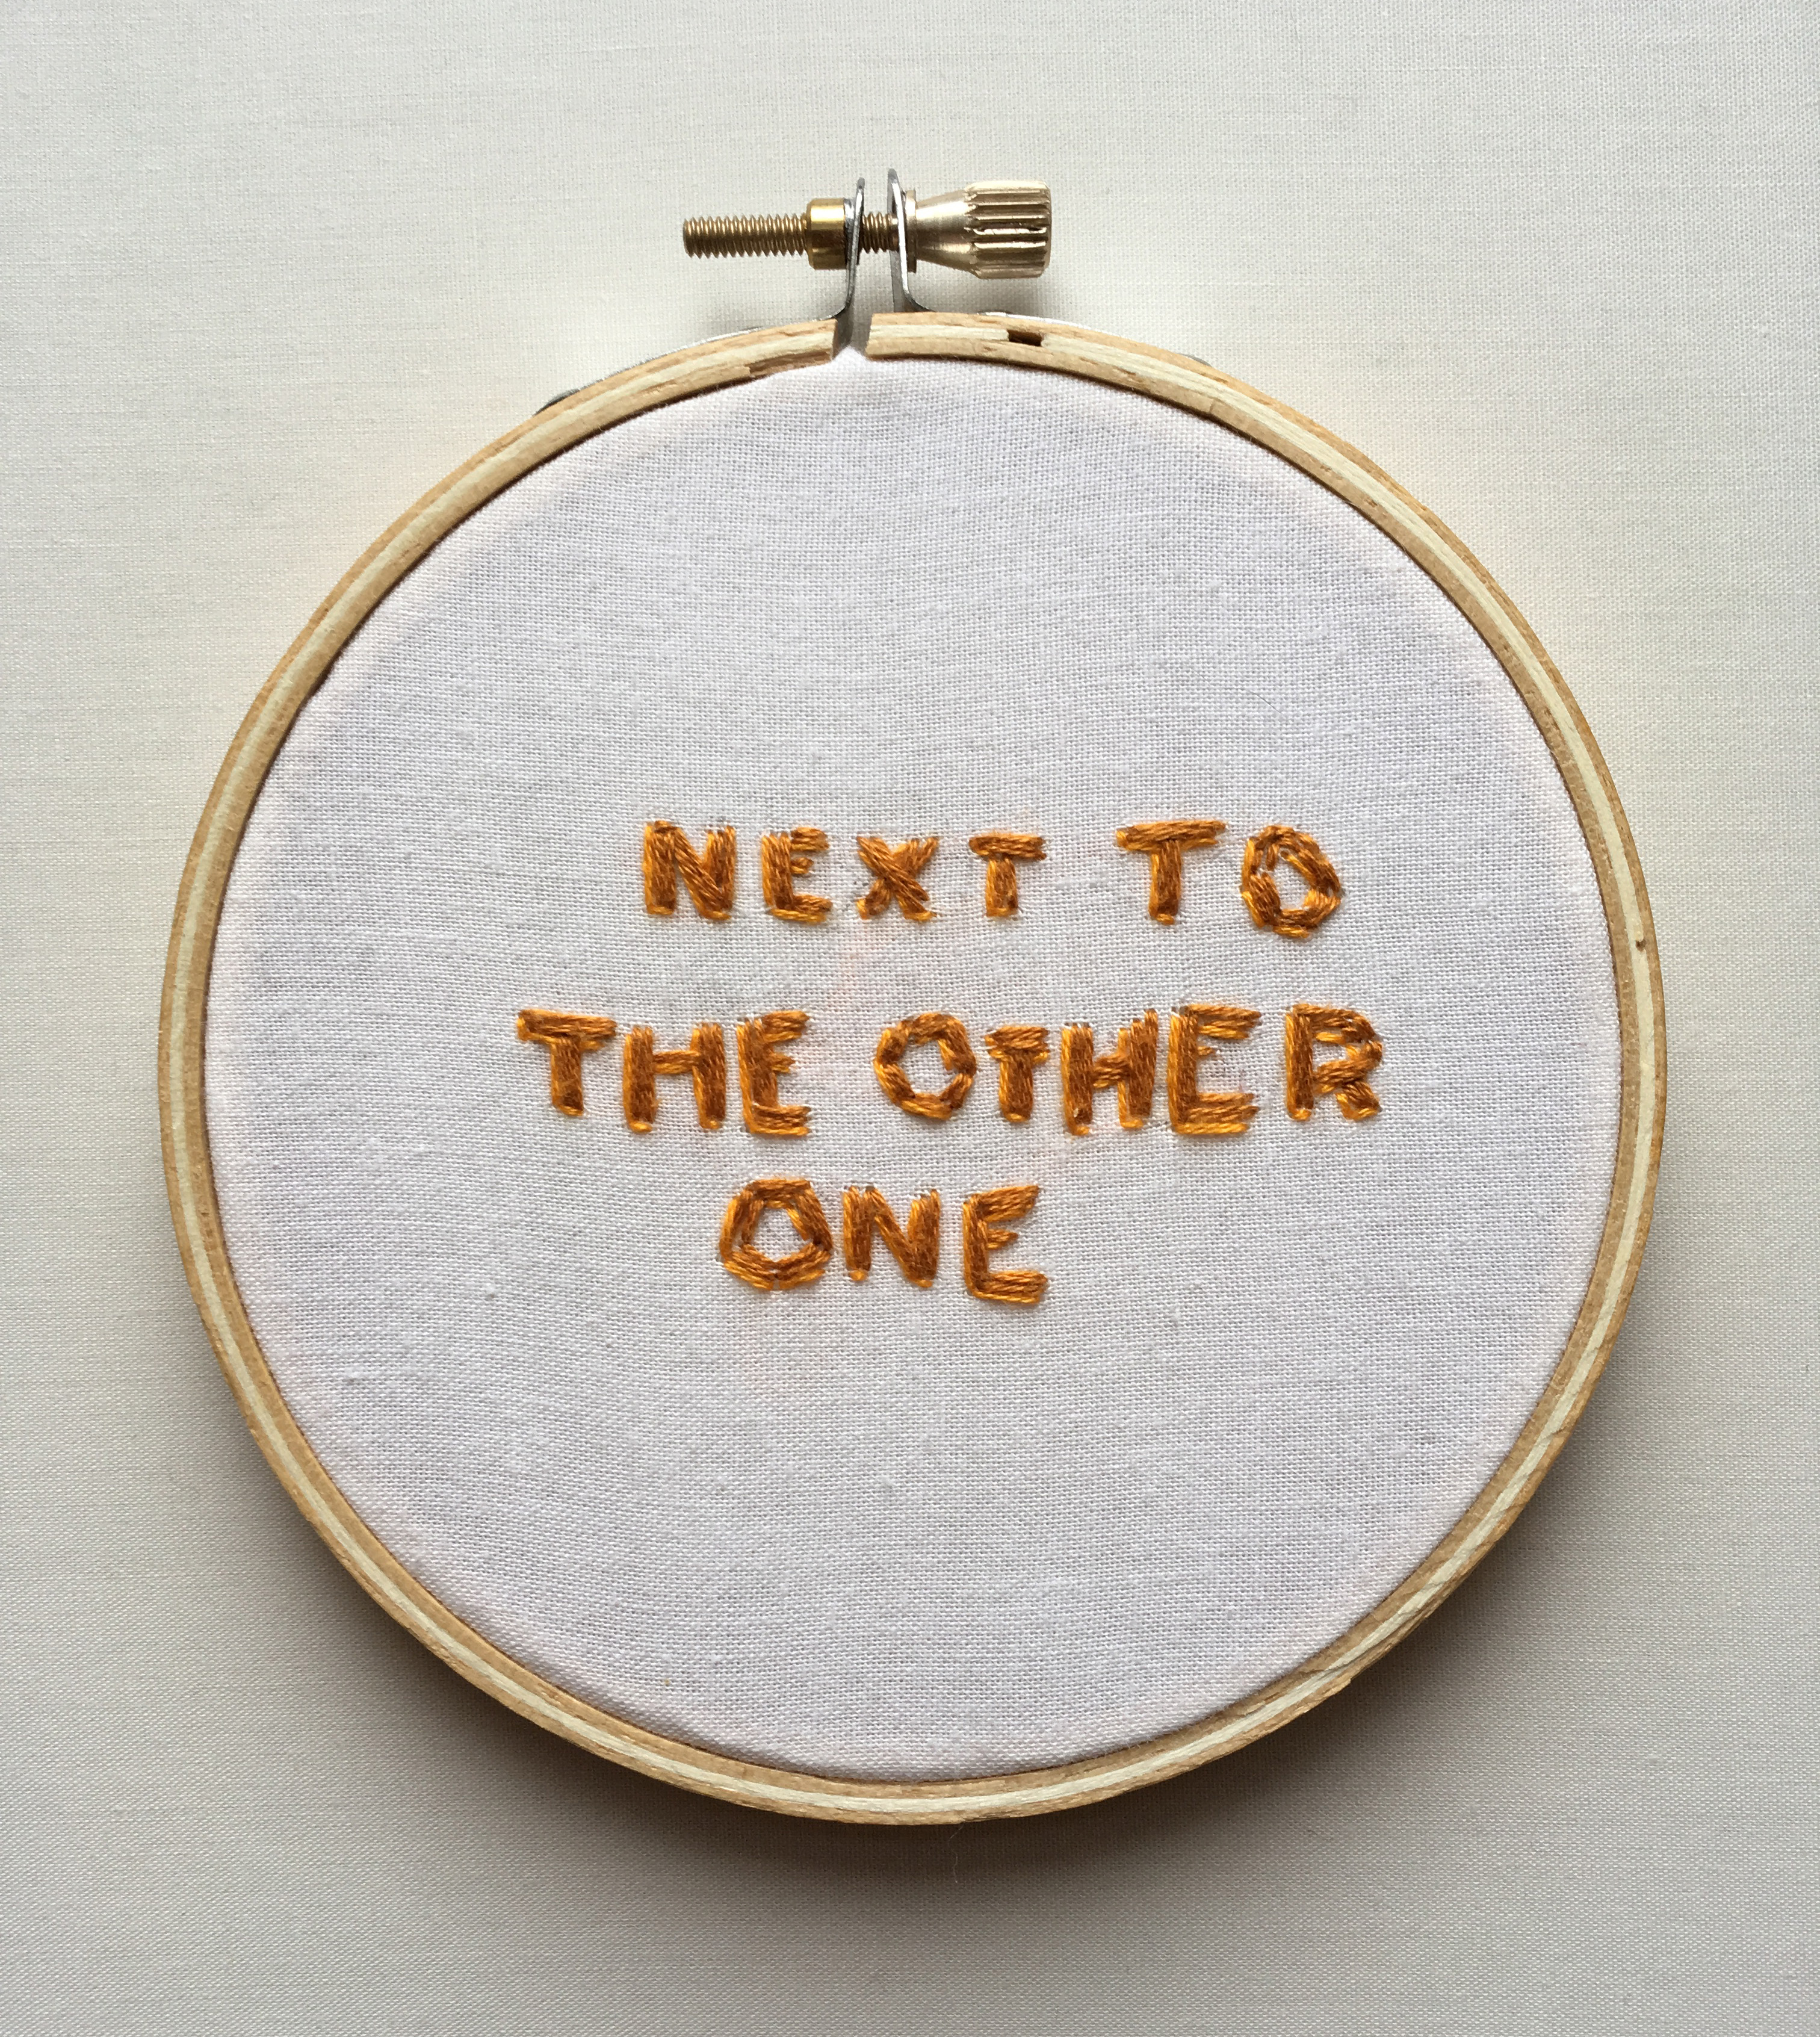 "An embroidery of the text ""next to the other one"" on white fabric stretched over a hoop."